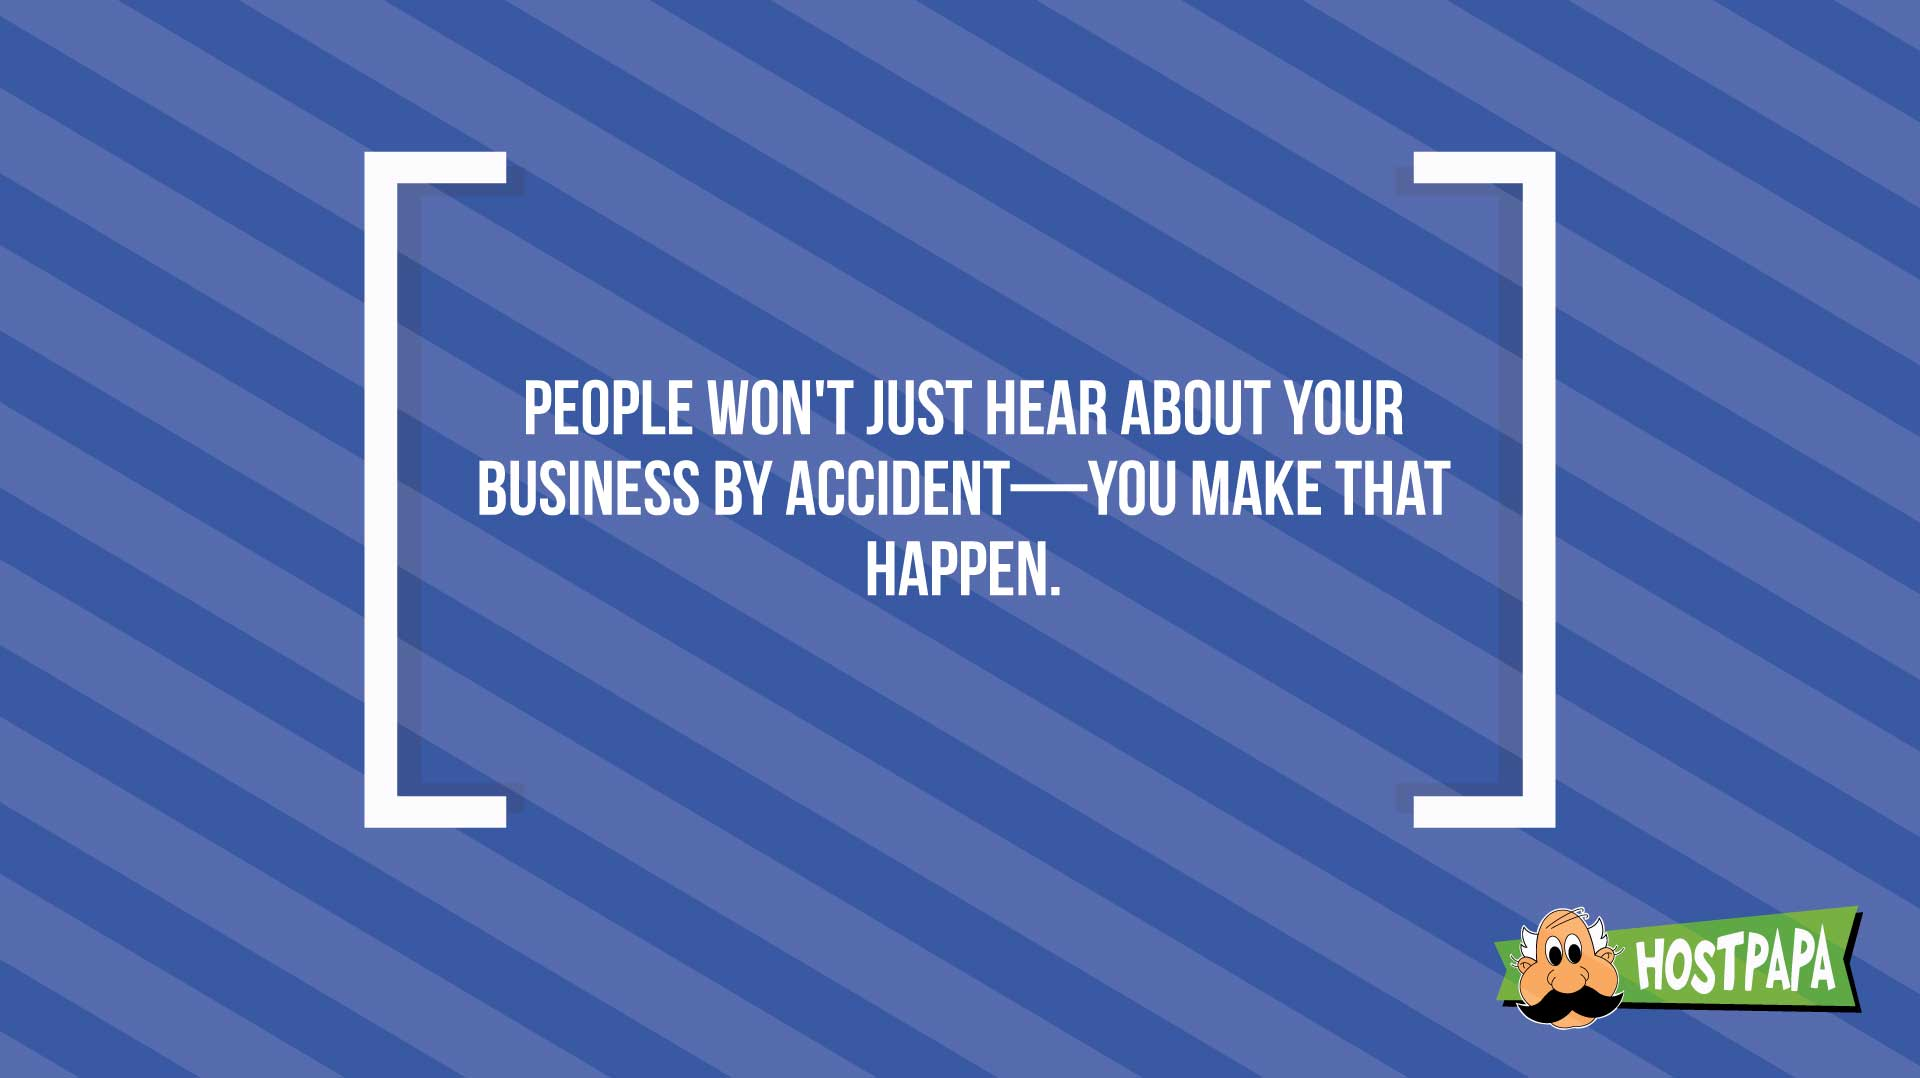 People won't just hear about your business by accident- you make that happen